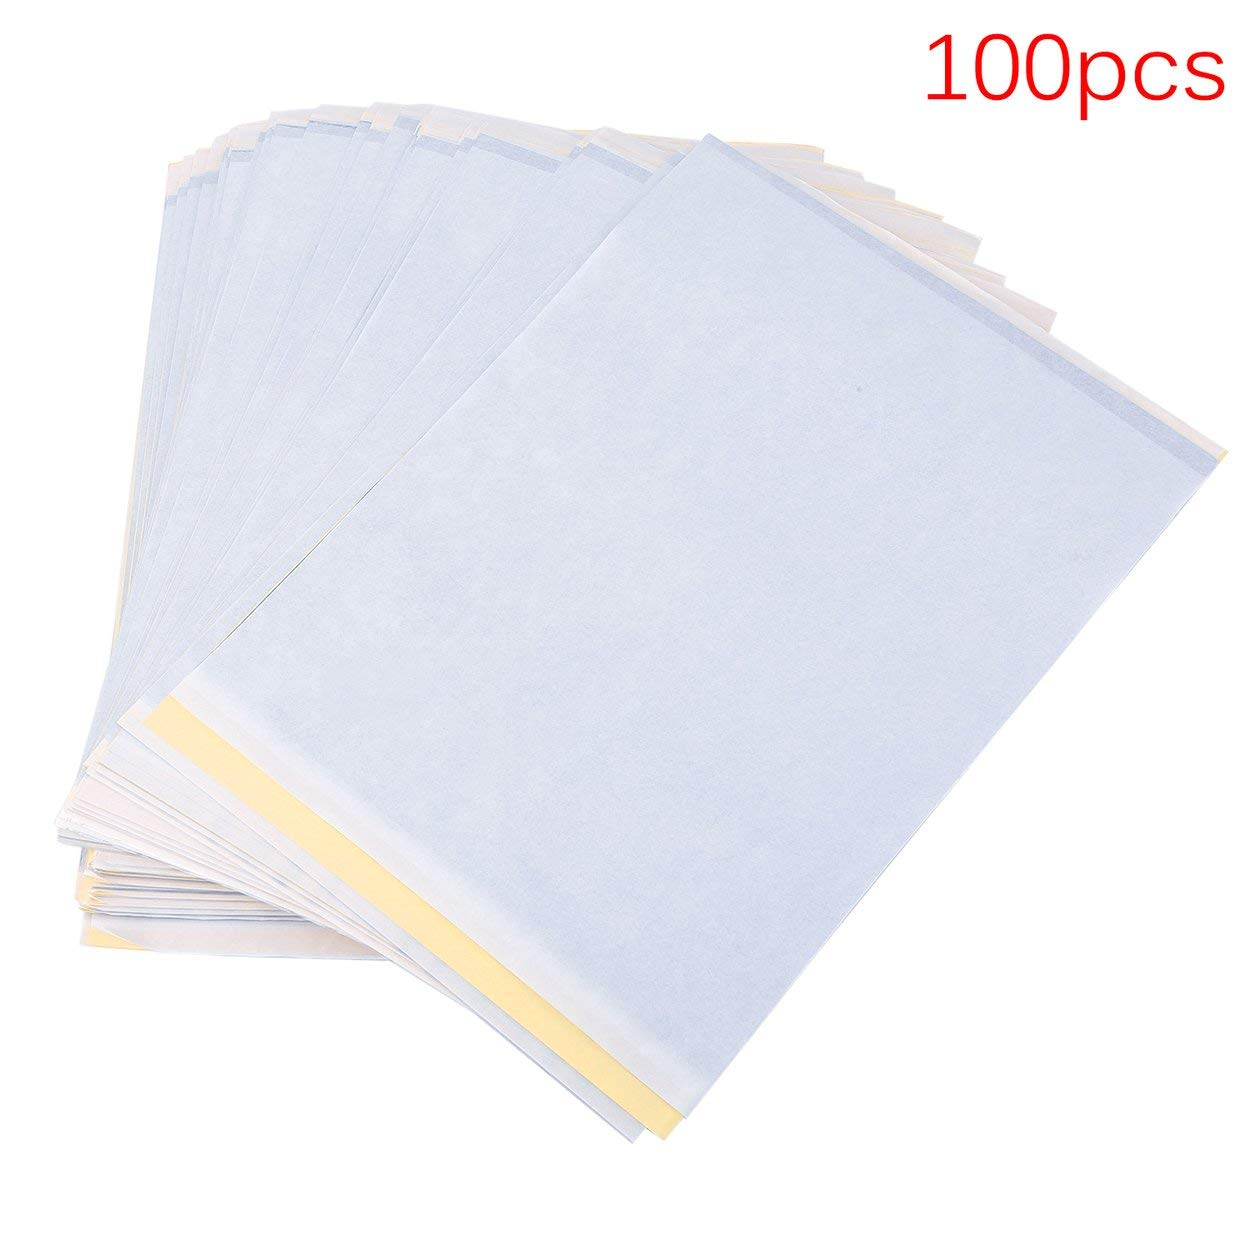 100 Sheets A4 Size Tattoo Carbon Thermal Tracing Copy Stencil Body Transfer Paper Copier Tattoo Accessory